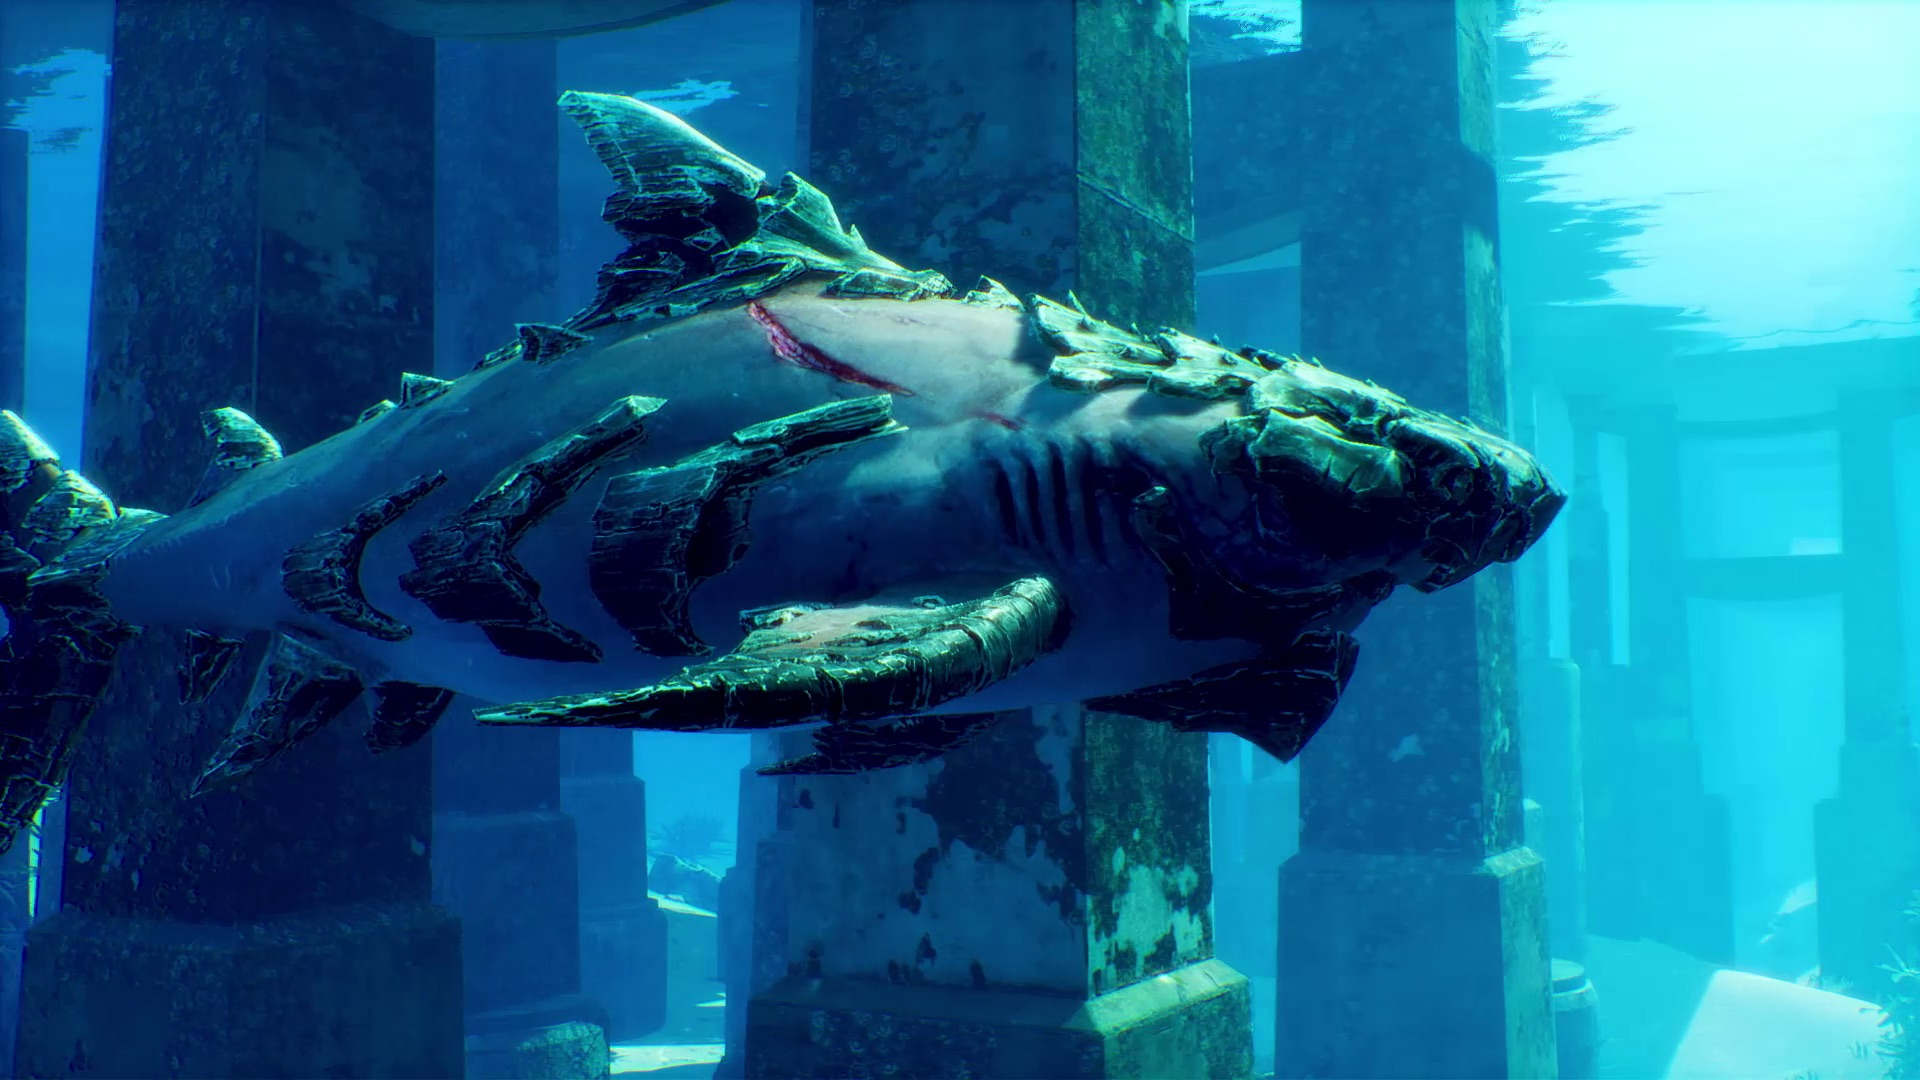 The protagonist of Maneater, a gigantic shark, swims through the sea.